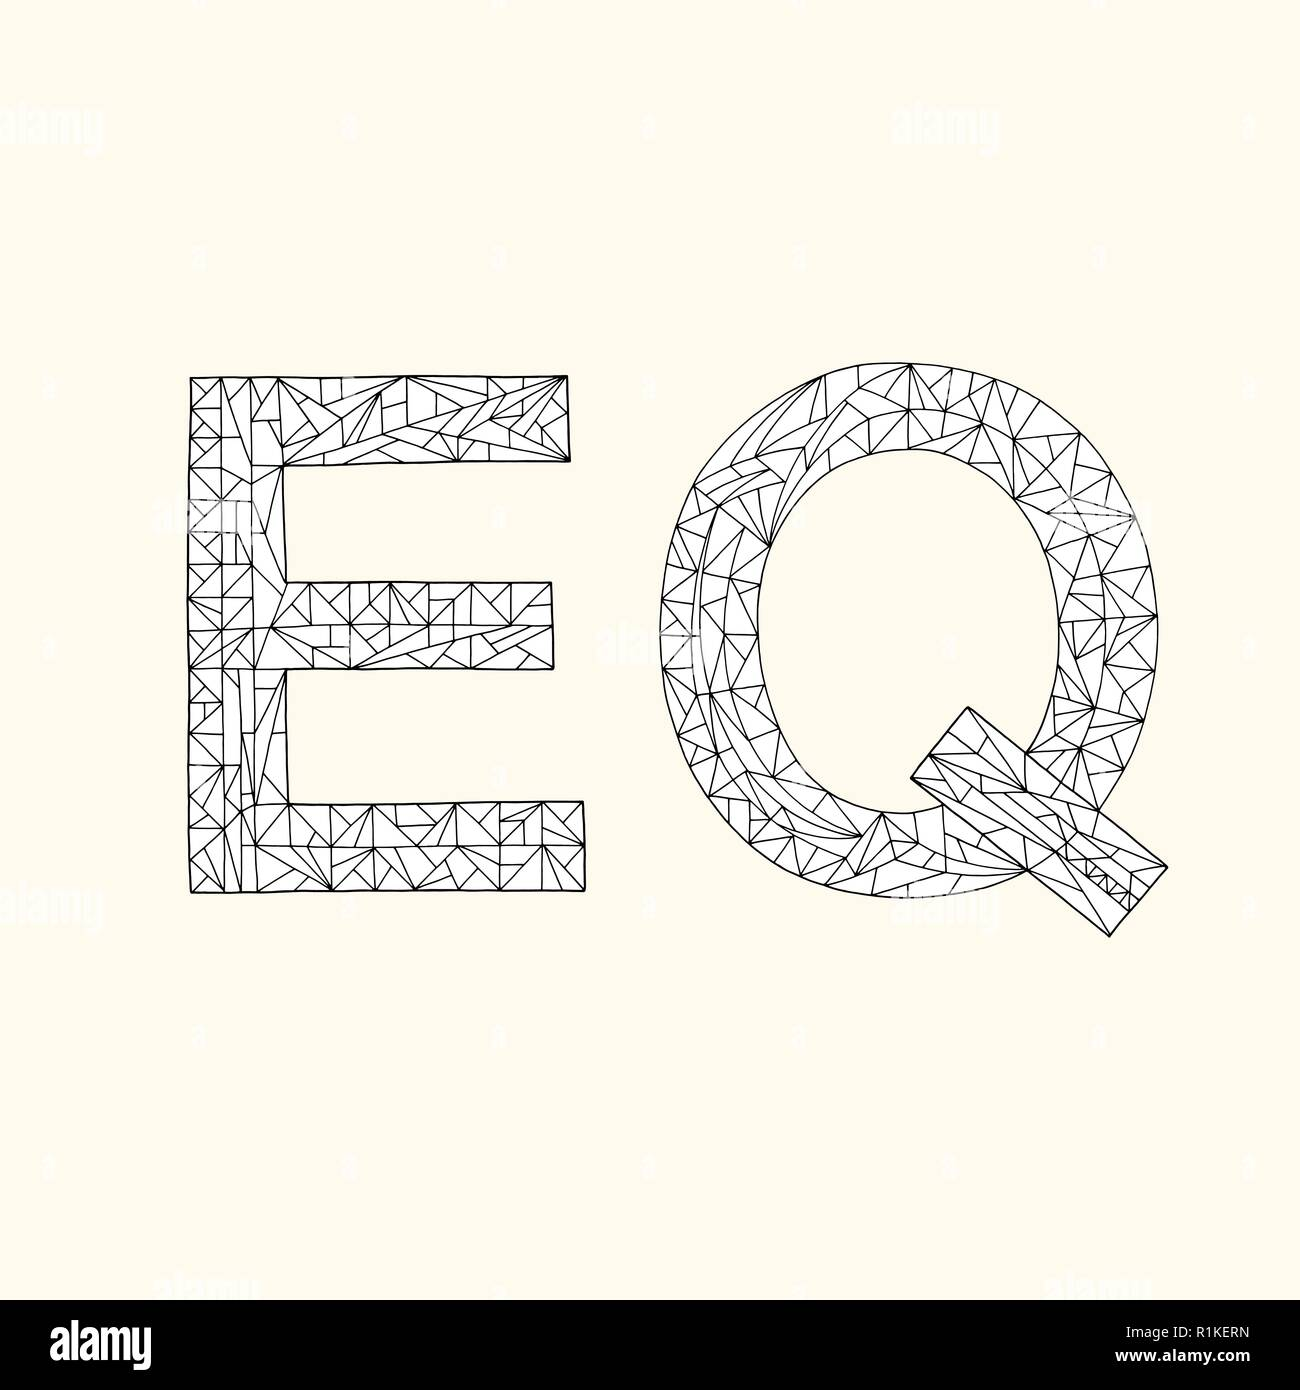 EQ hand drawn coloring book. Emotional quotient design vector background - Stock Image